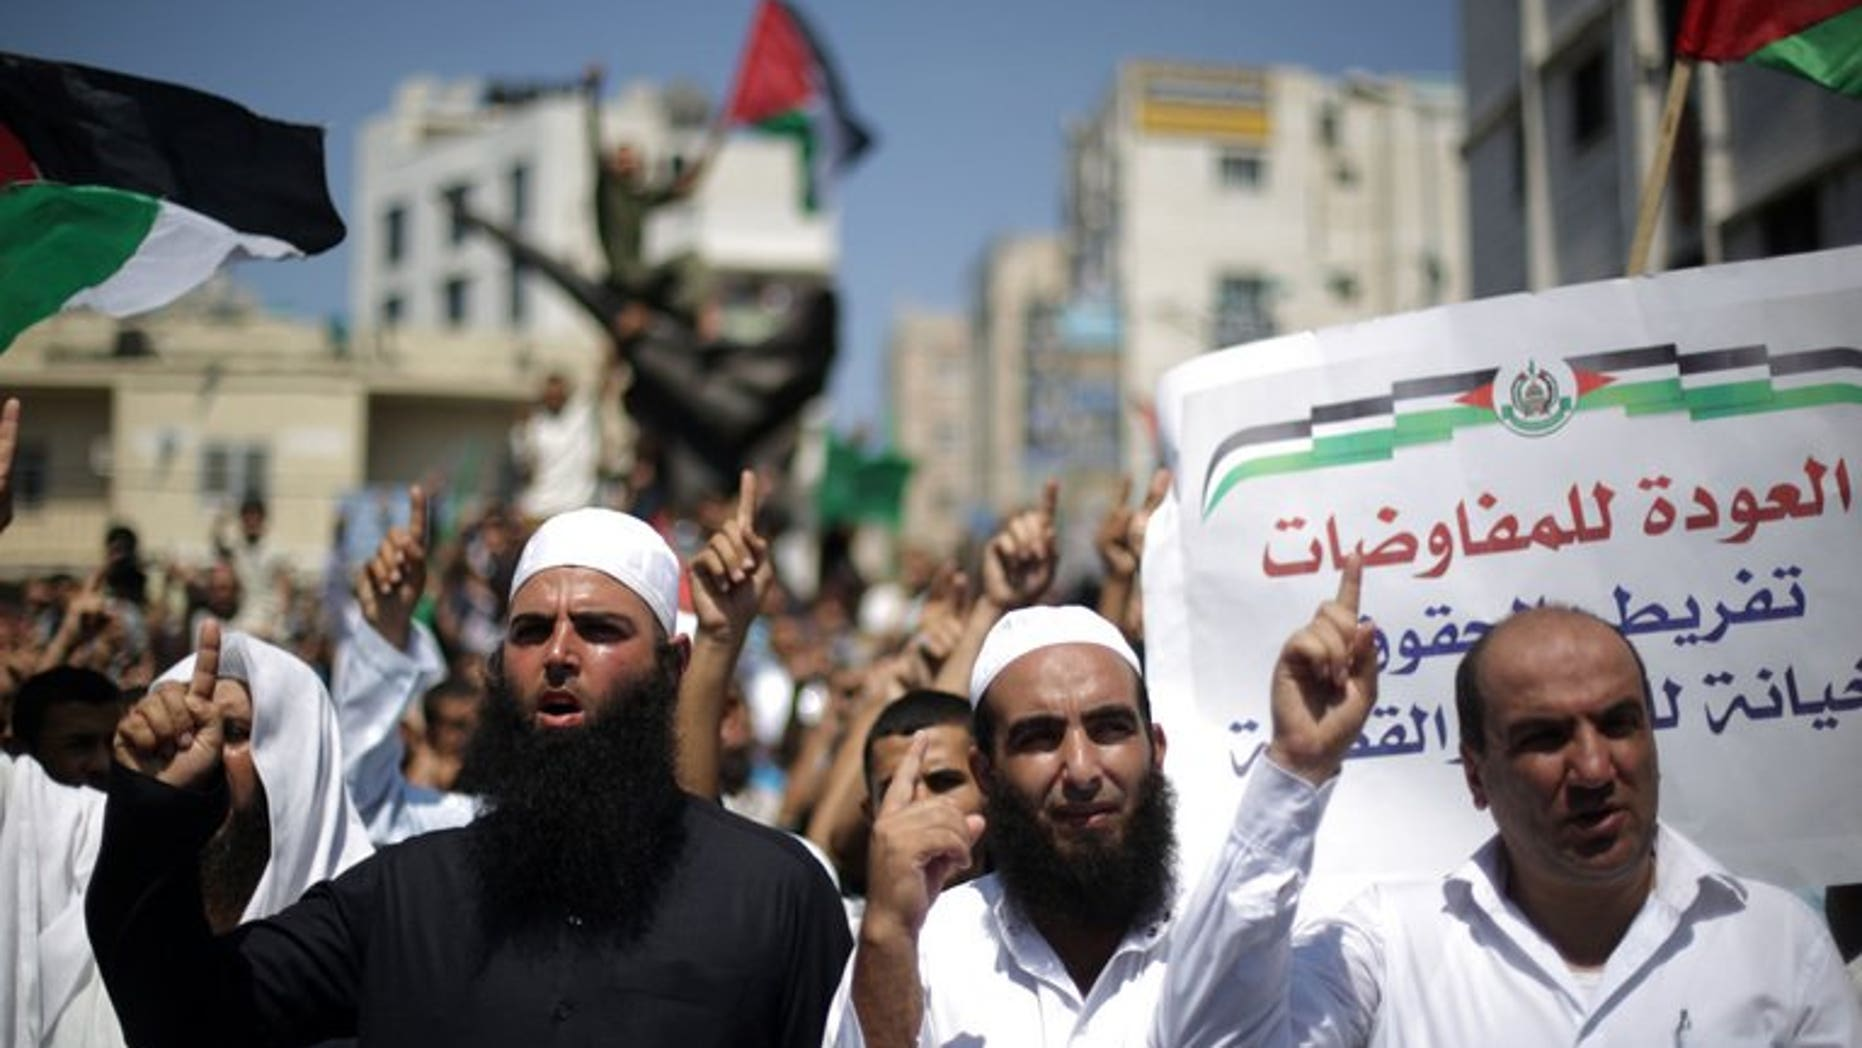 Palestinian supporters of Hamas and protest against Palestinian-Israeli negotiations on August 23, 2013, in Gaza City. Hundreds of people in the Gaza Strip protested on Friday against Israeli-Palestinian peace talks, in marches organised by Hamas and Islamic Jihad.